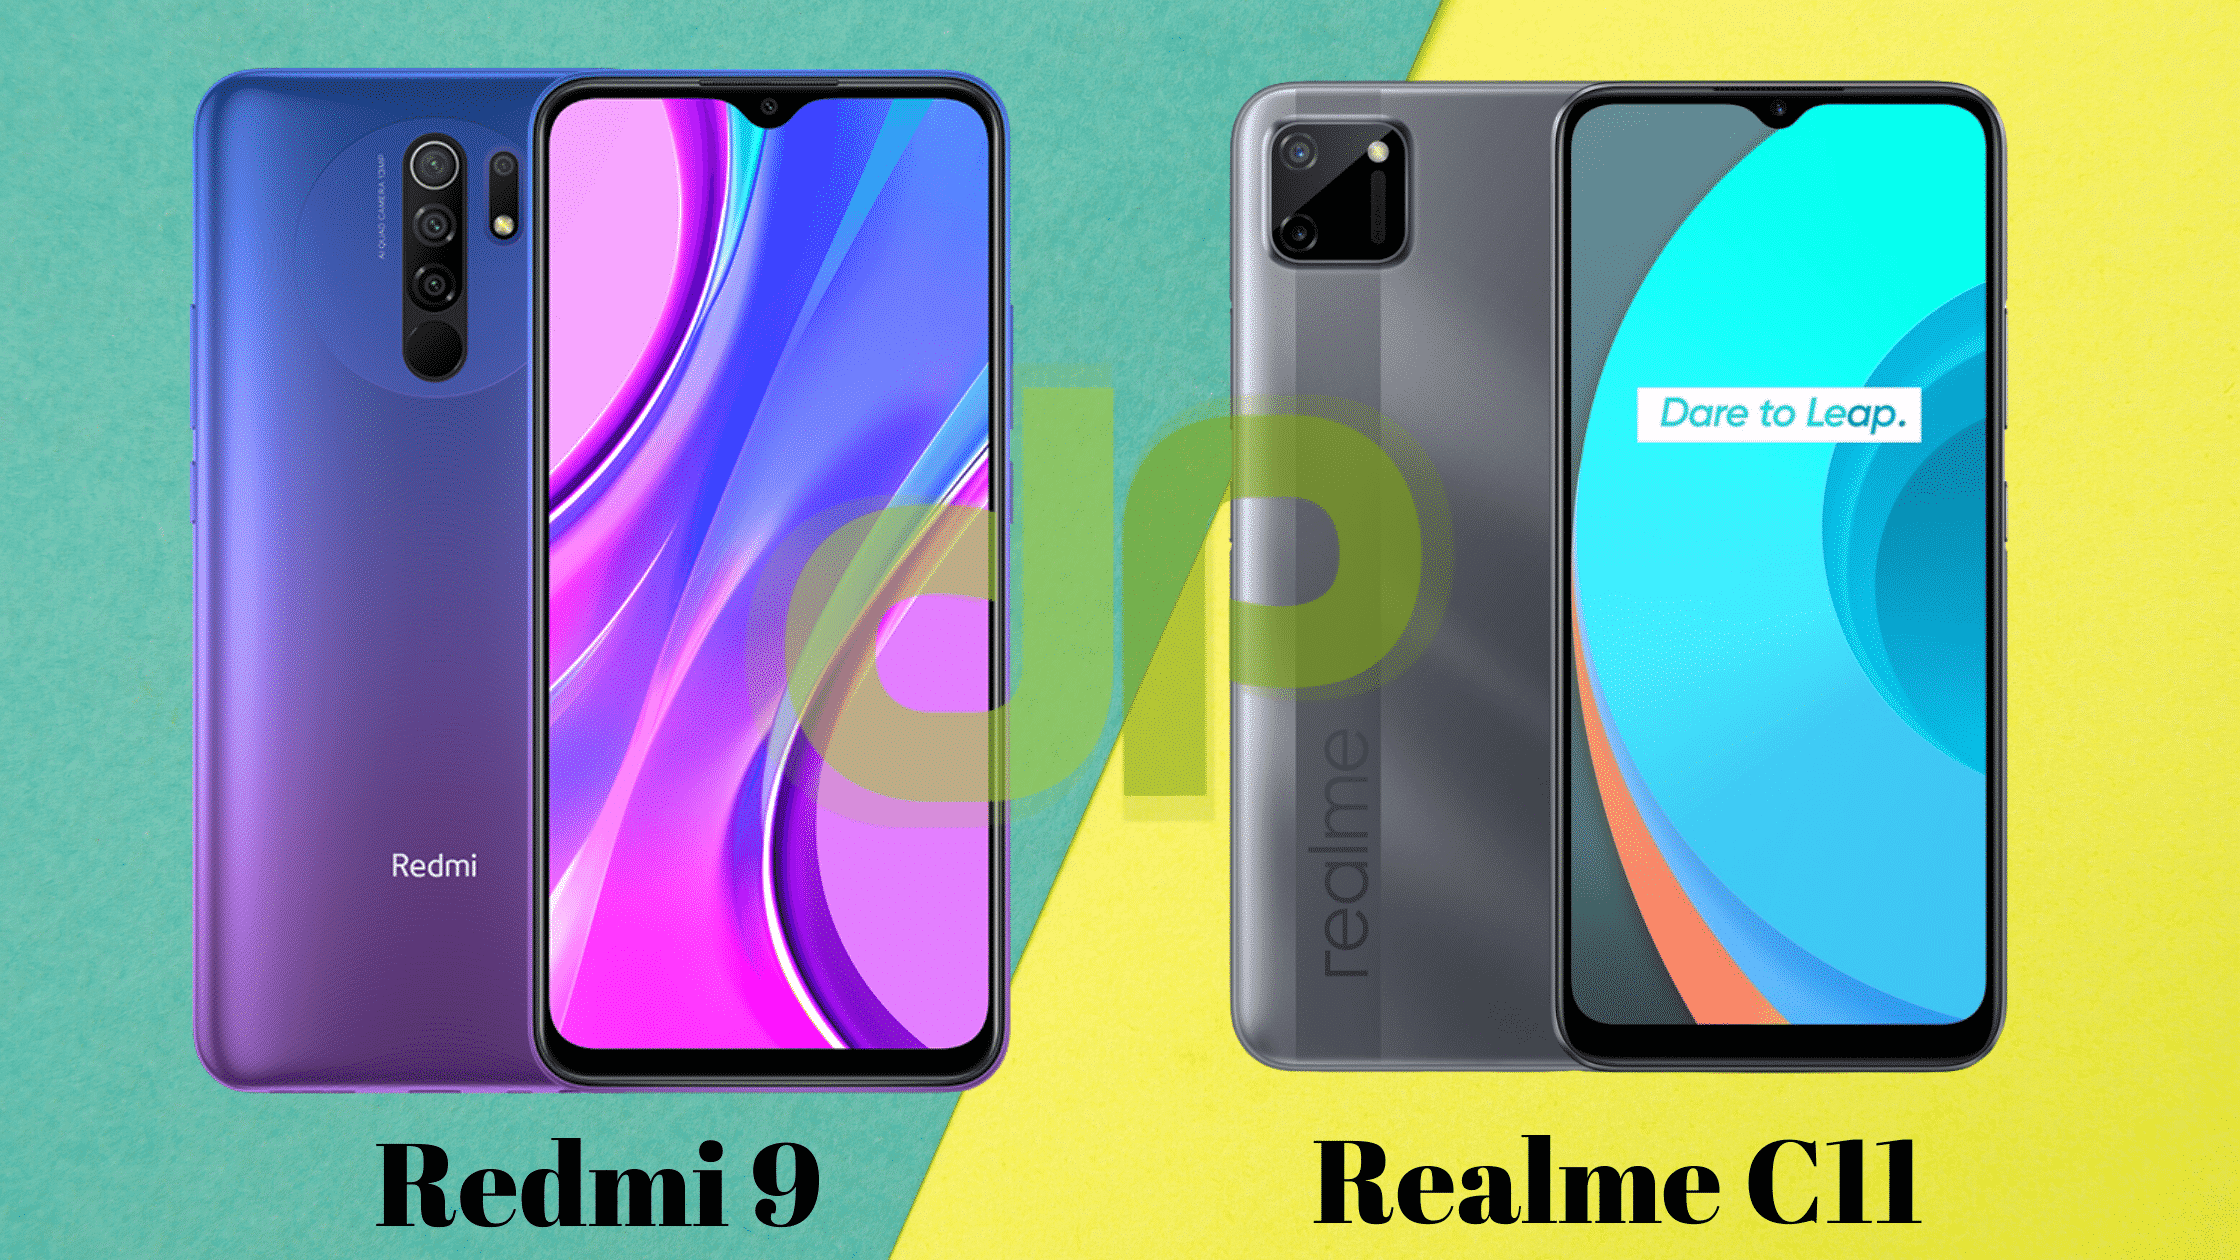 Redmi 9 vs Realme C11